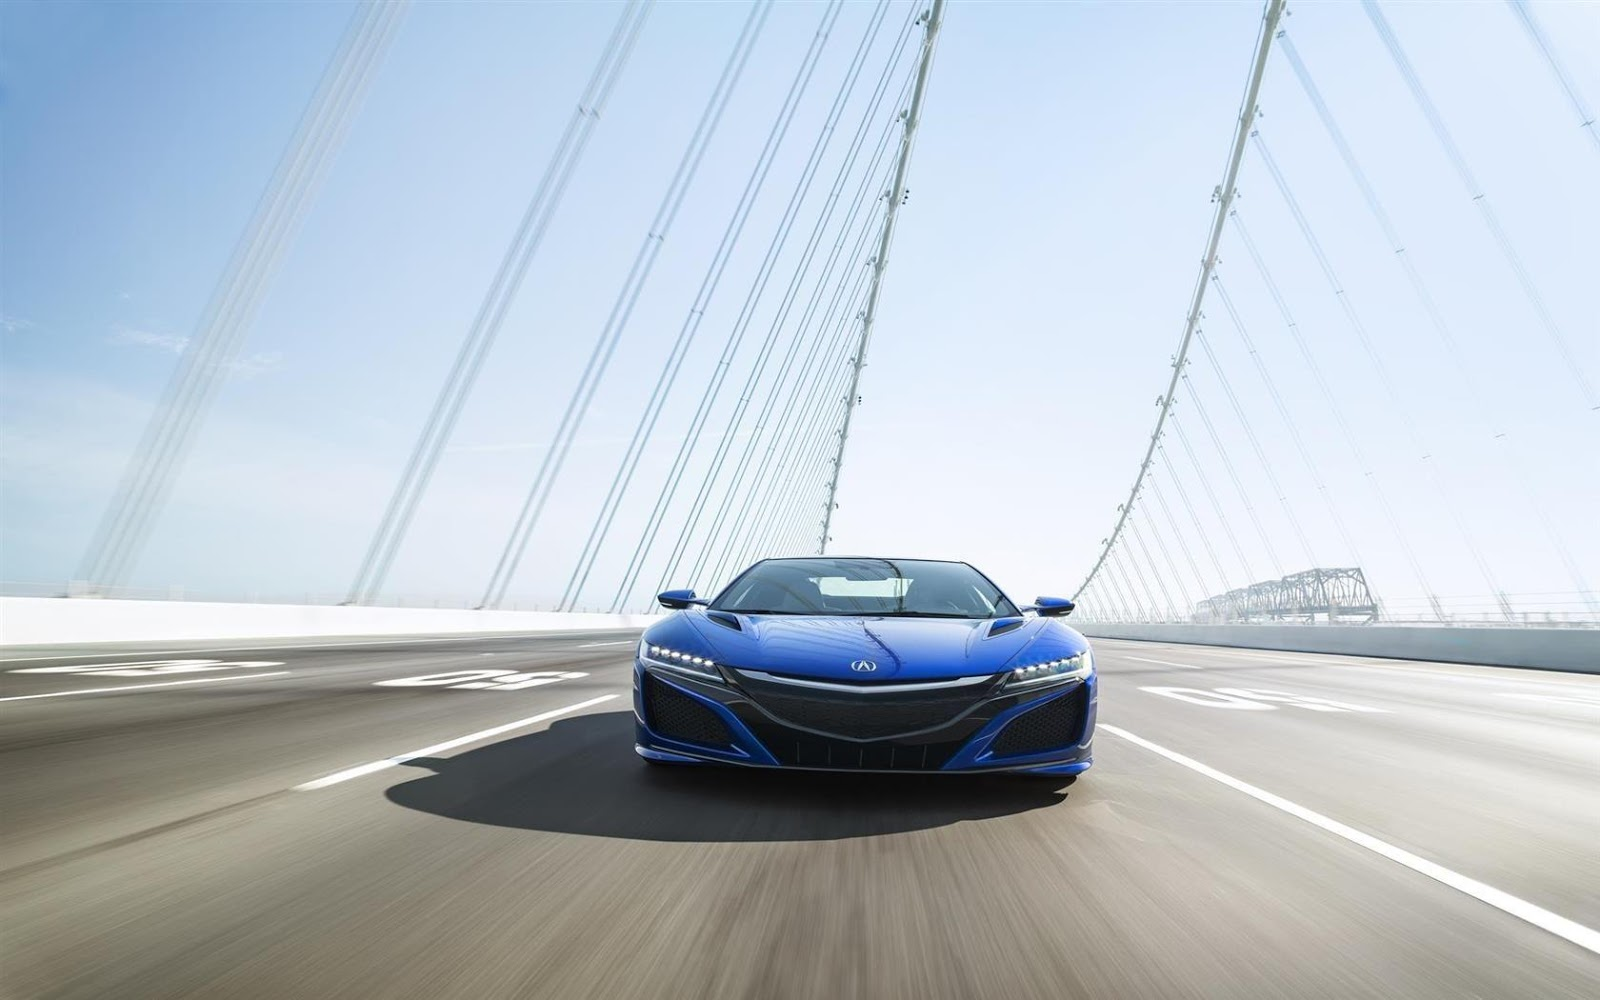 2017 Acura NSX Image. Photo 2017